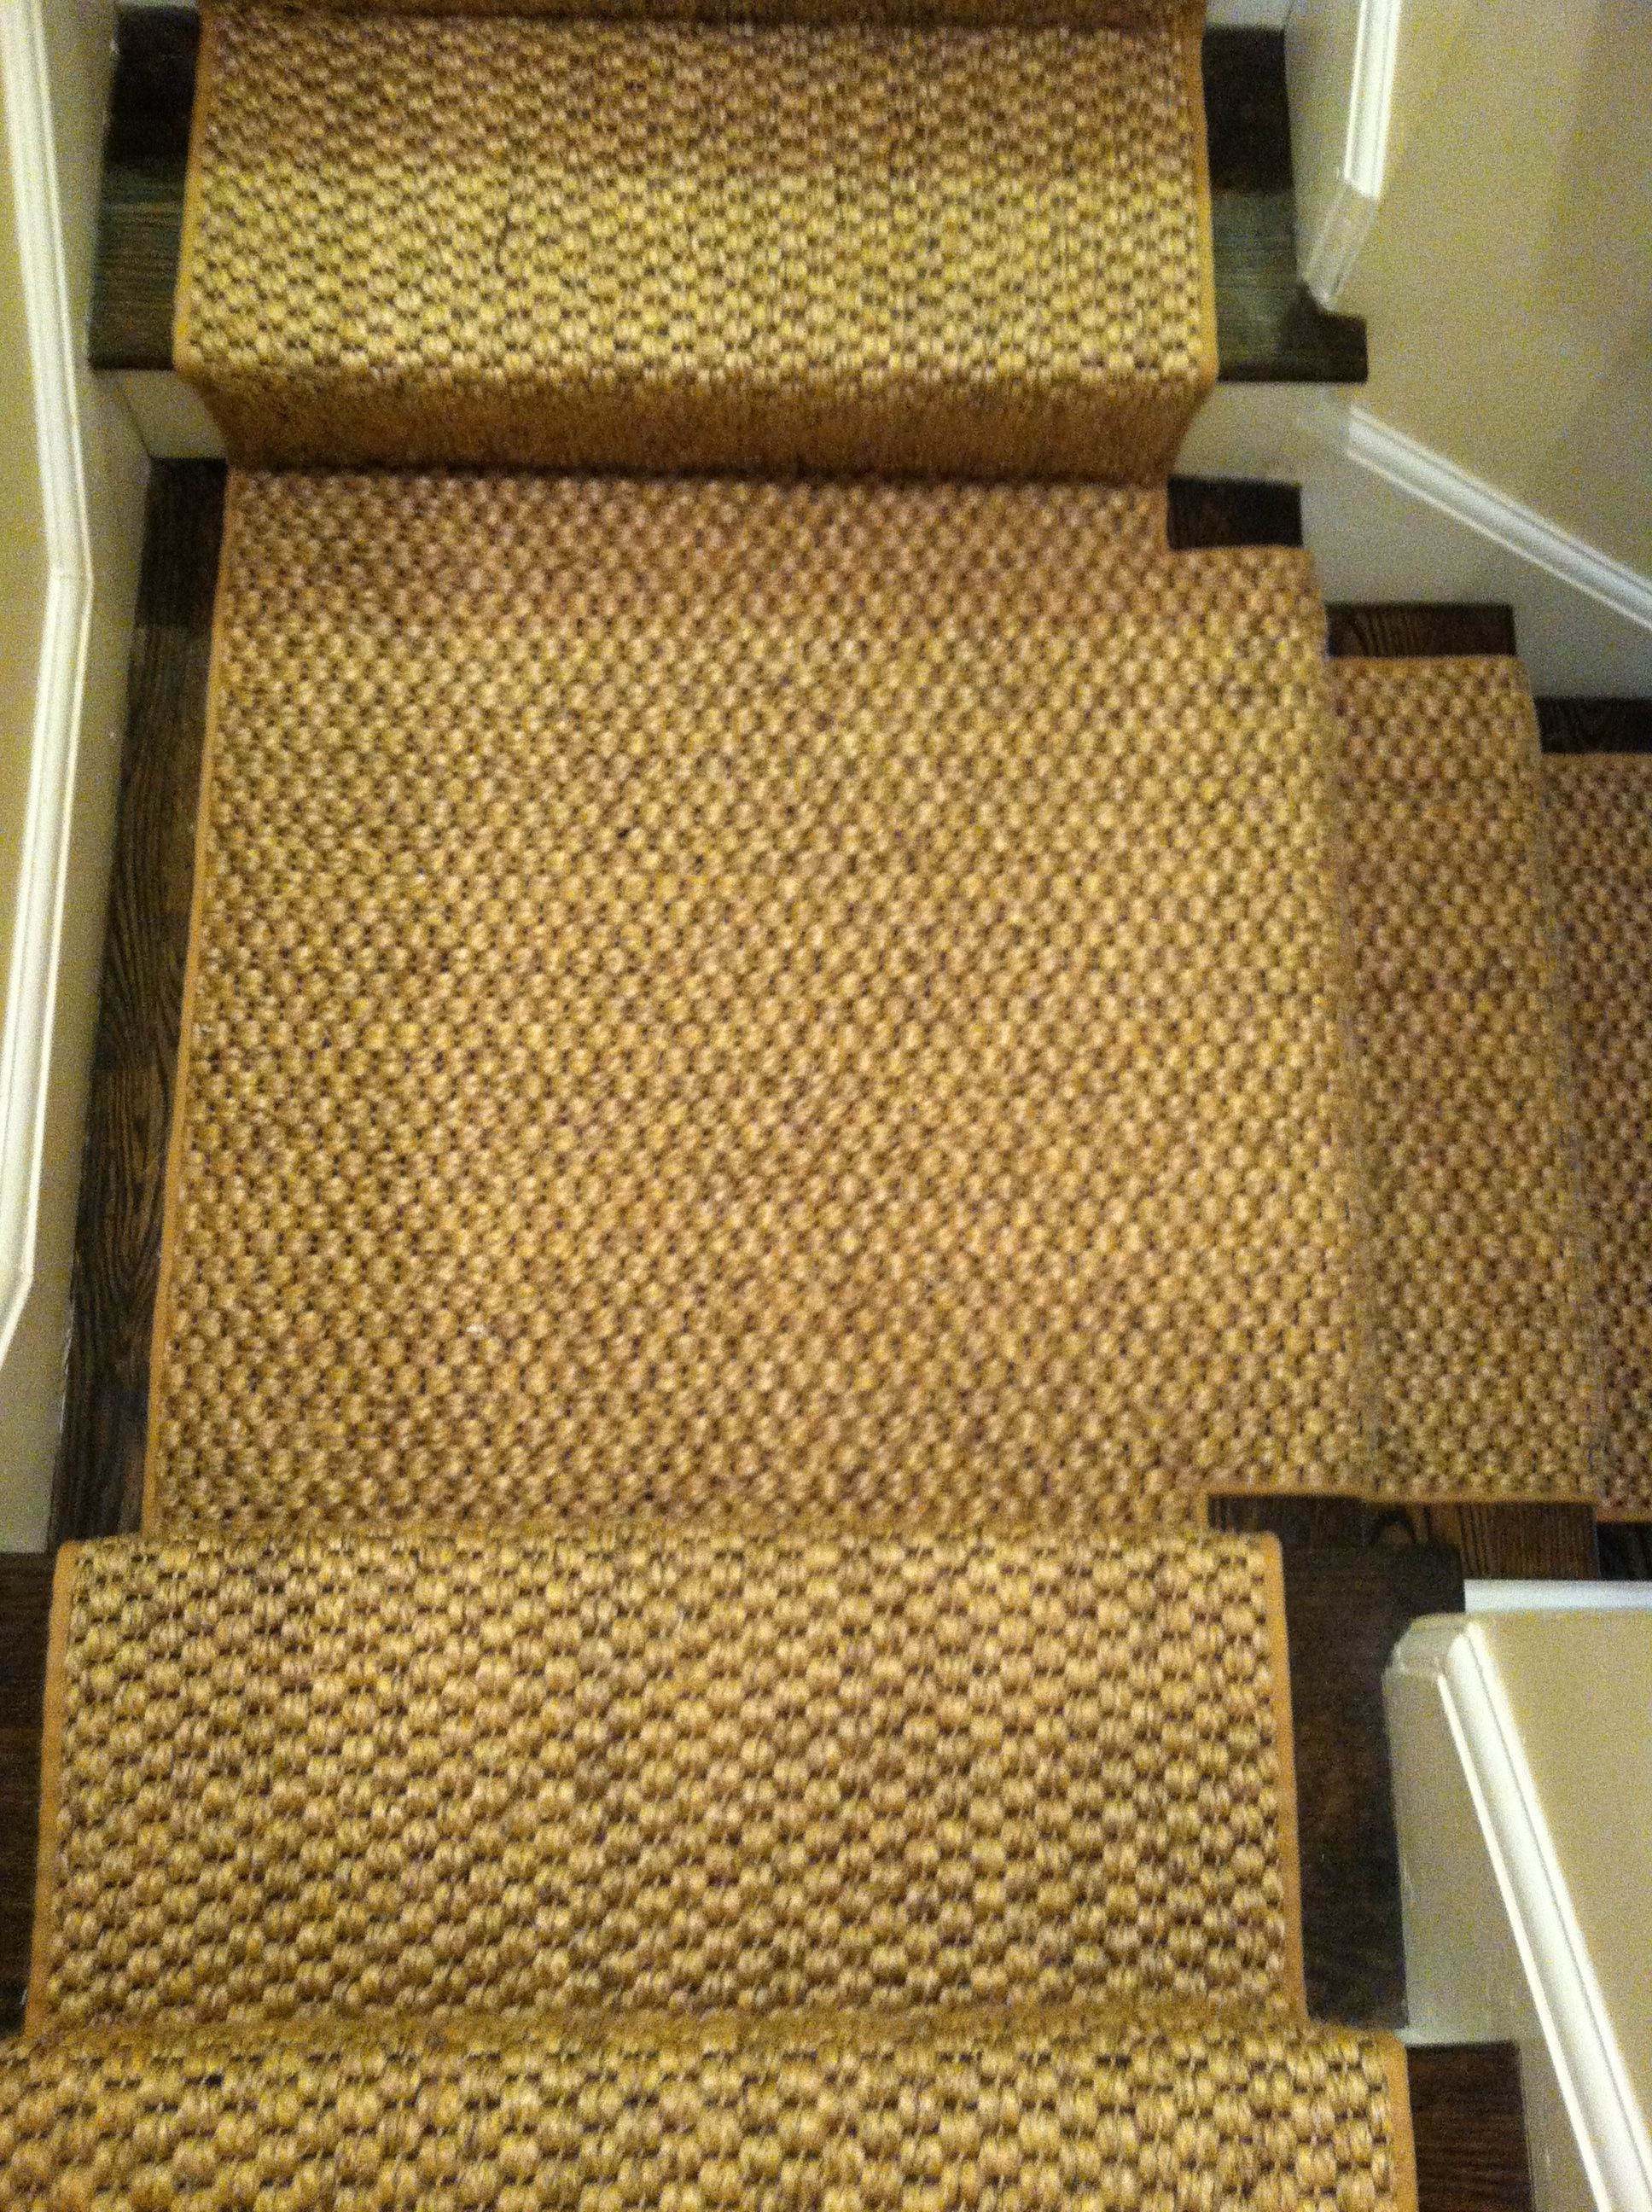 this sisalcarpet remnant was fabricated into a custom stair runner and installed in dedham